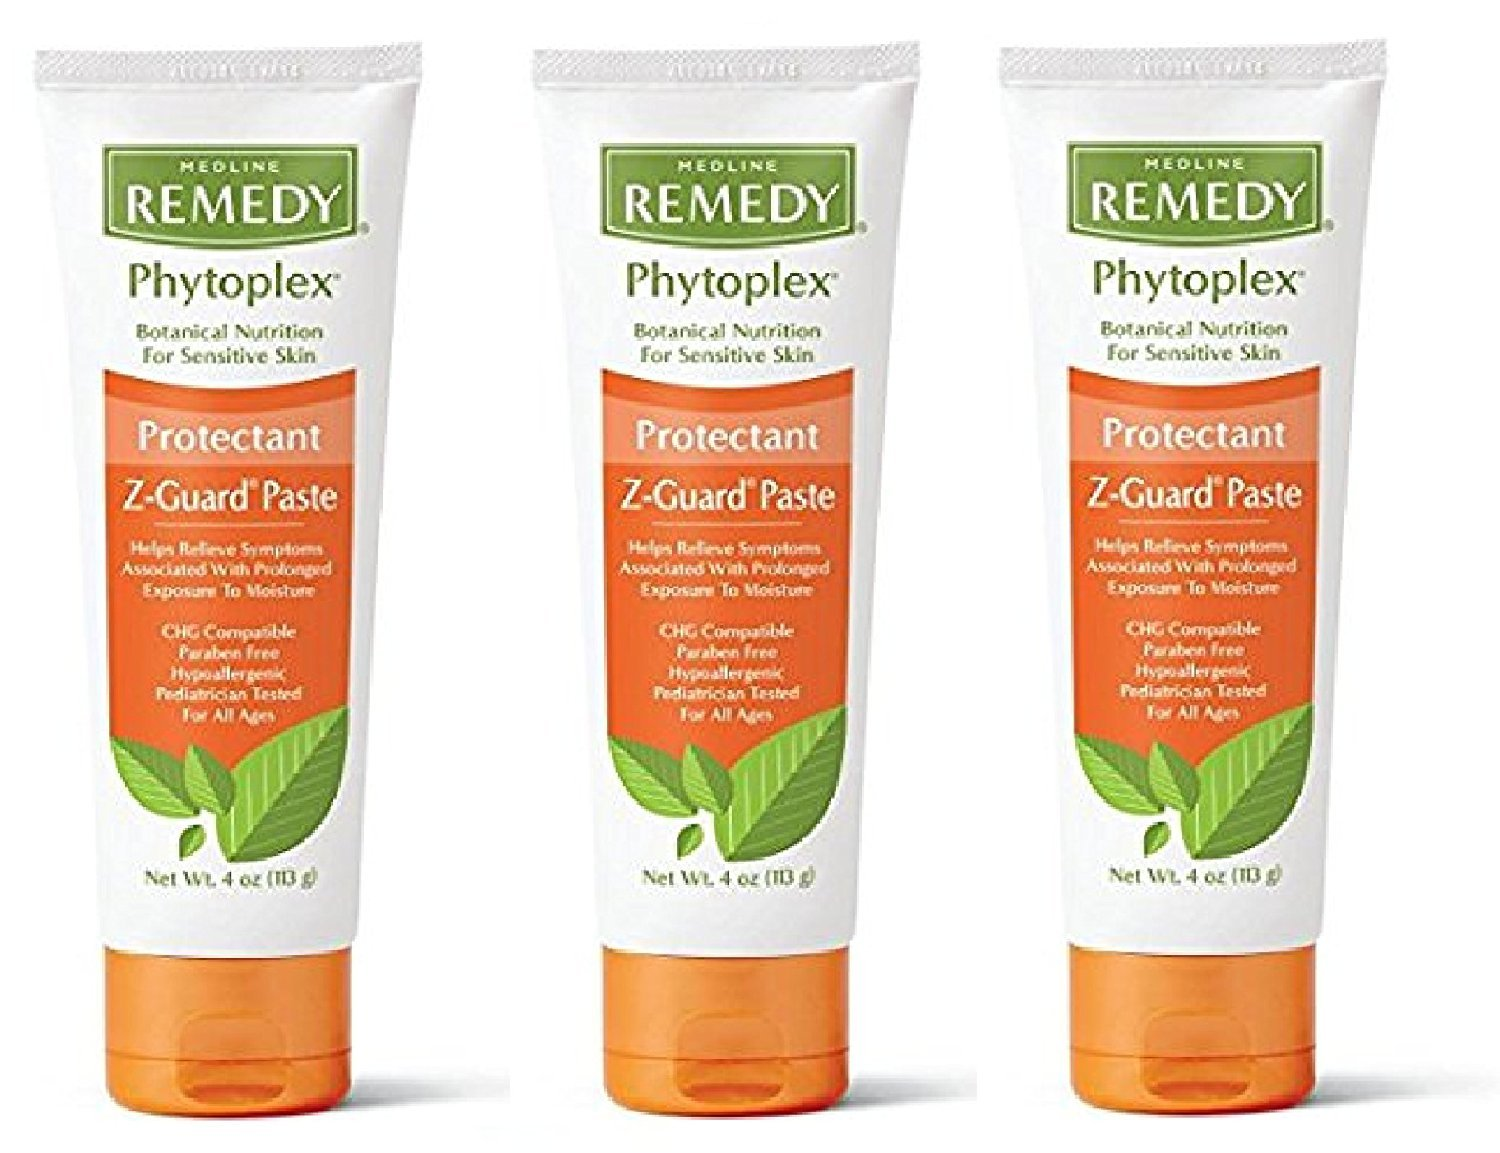 Medline Remedy Phytoplex Z-Guard Skin Protectant Paste, 4 Ounce, 3 Pack